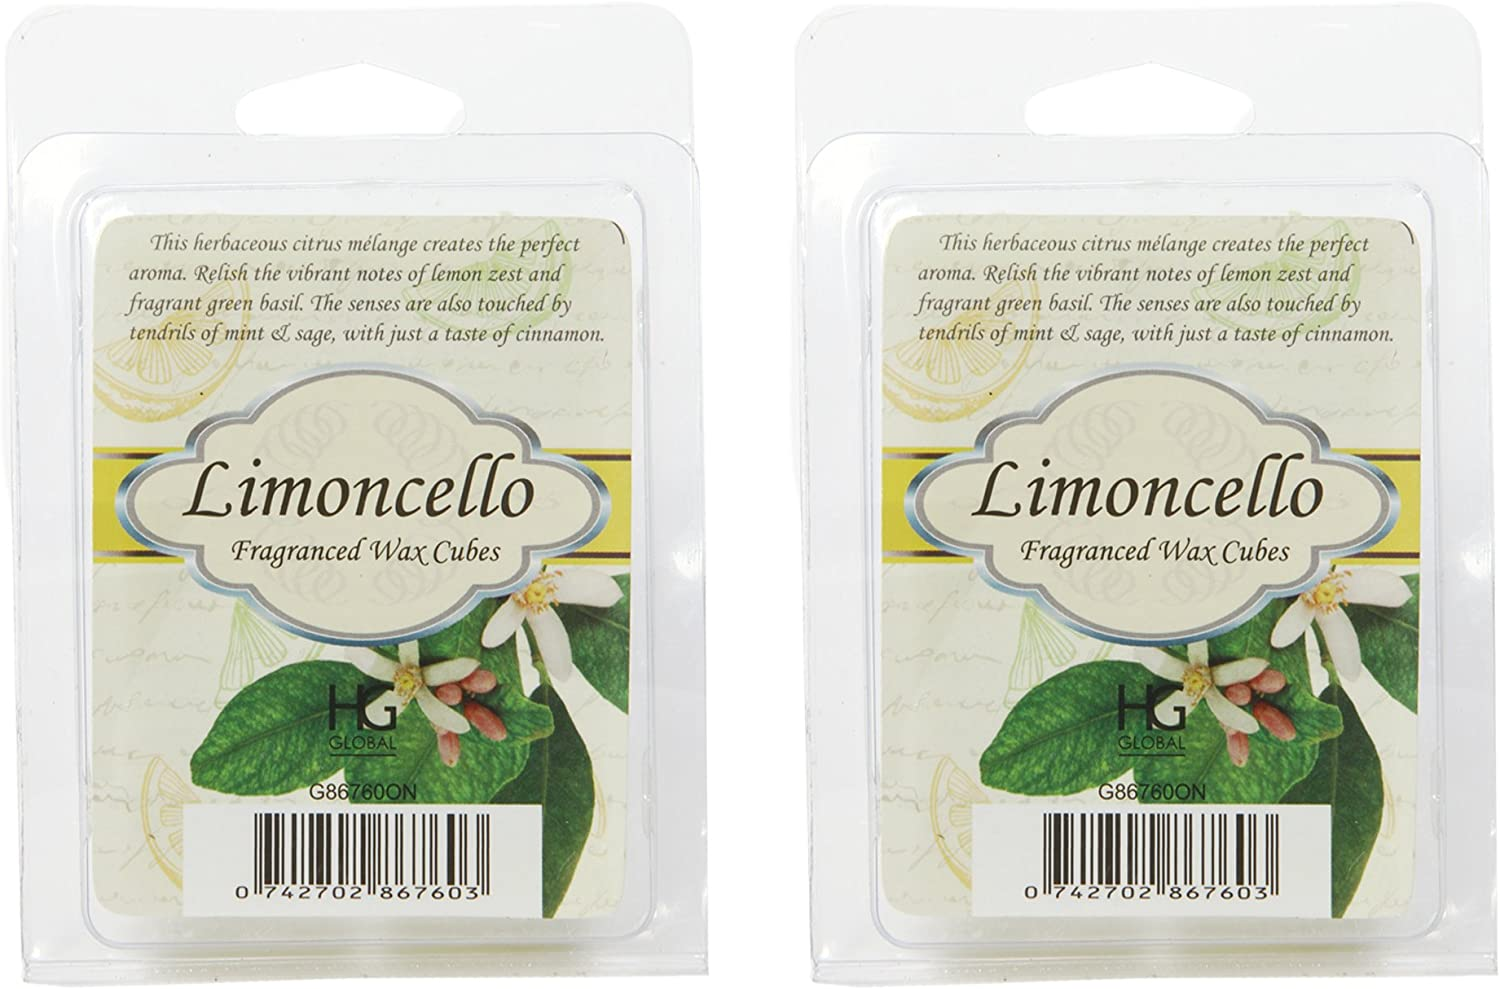 Hosley's Set of 2 Limoncello Scented Wax Cubes / Melts - 2.5 oz each. Hand Poured Wax Infused with Essential Oils. Ideal GIFT for Weddings, Spa, Reiki, Meditation Settings. O9